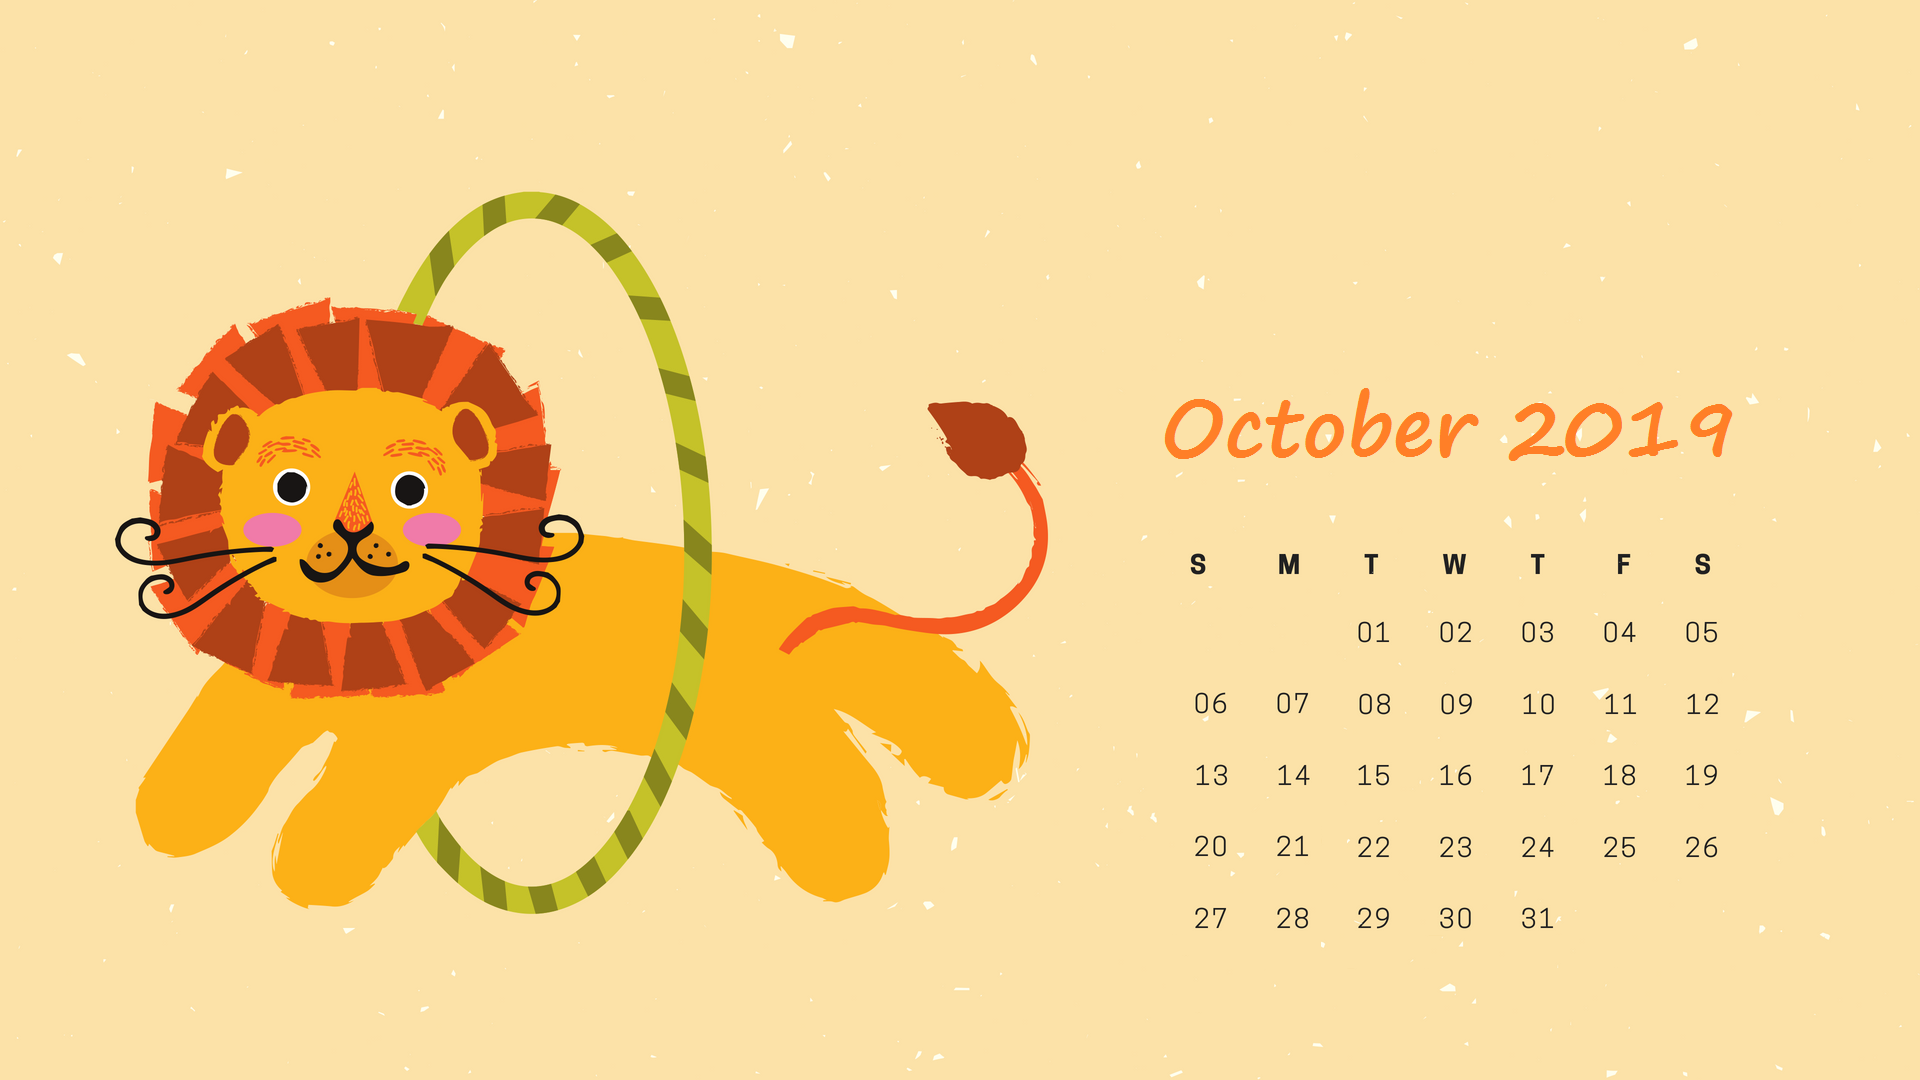 October 2019 Desktop Calendar Wallpaper Calendar